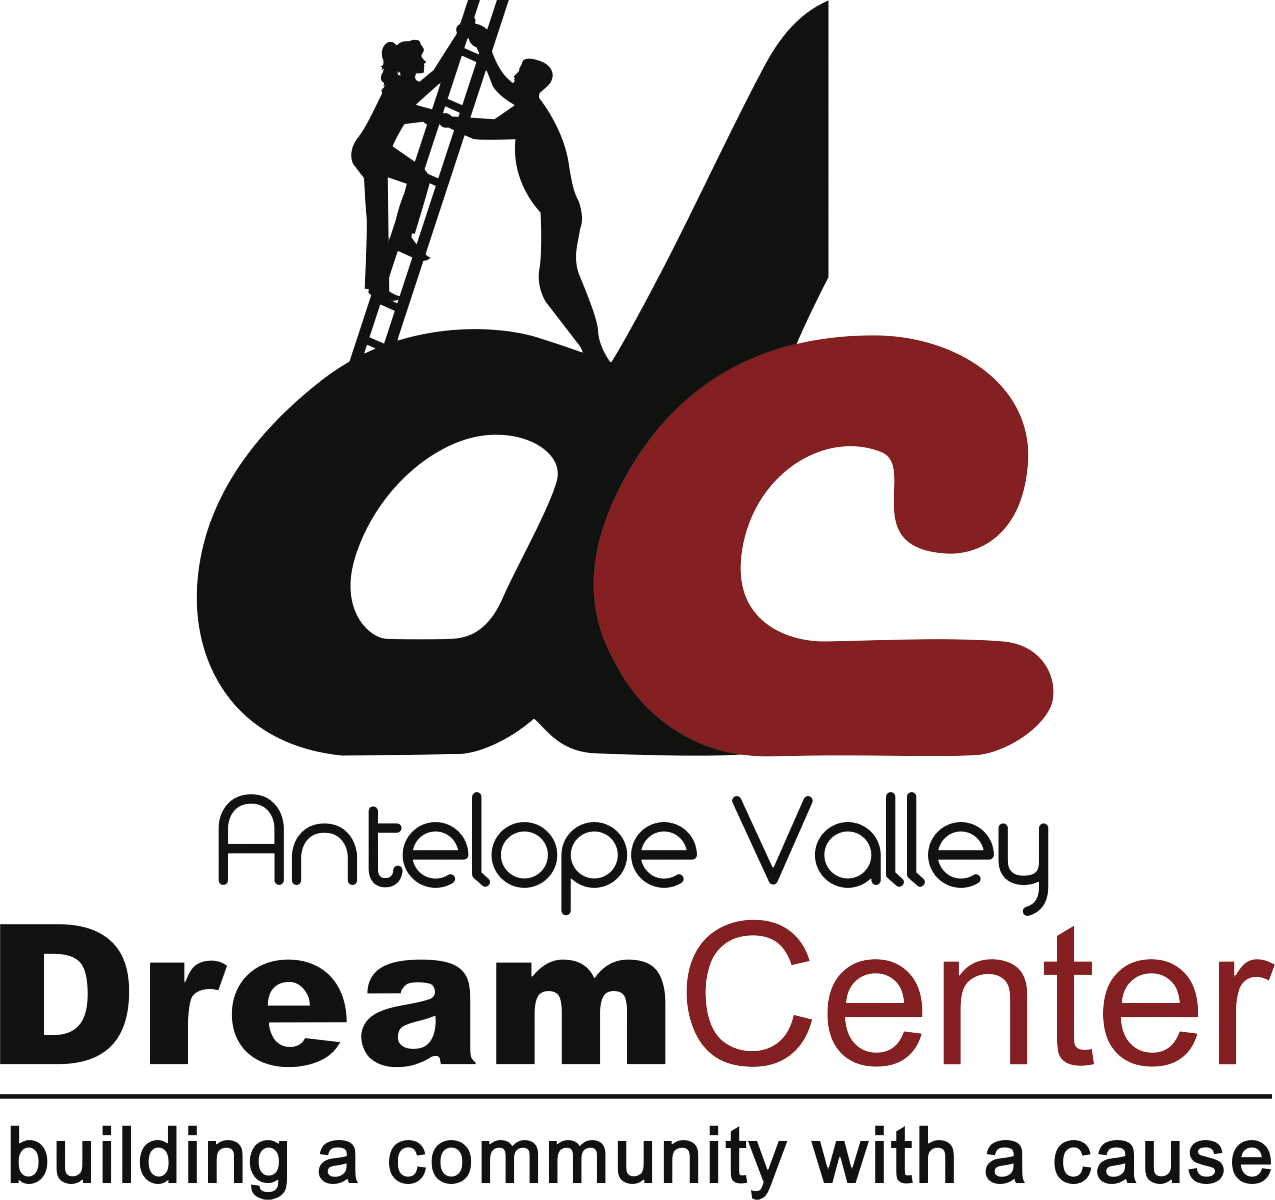 Antelope Valley Dream Center-Building a community with a cause